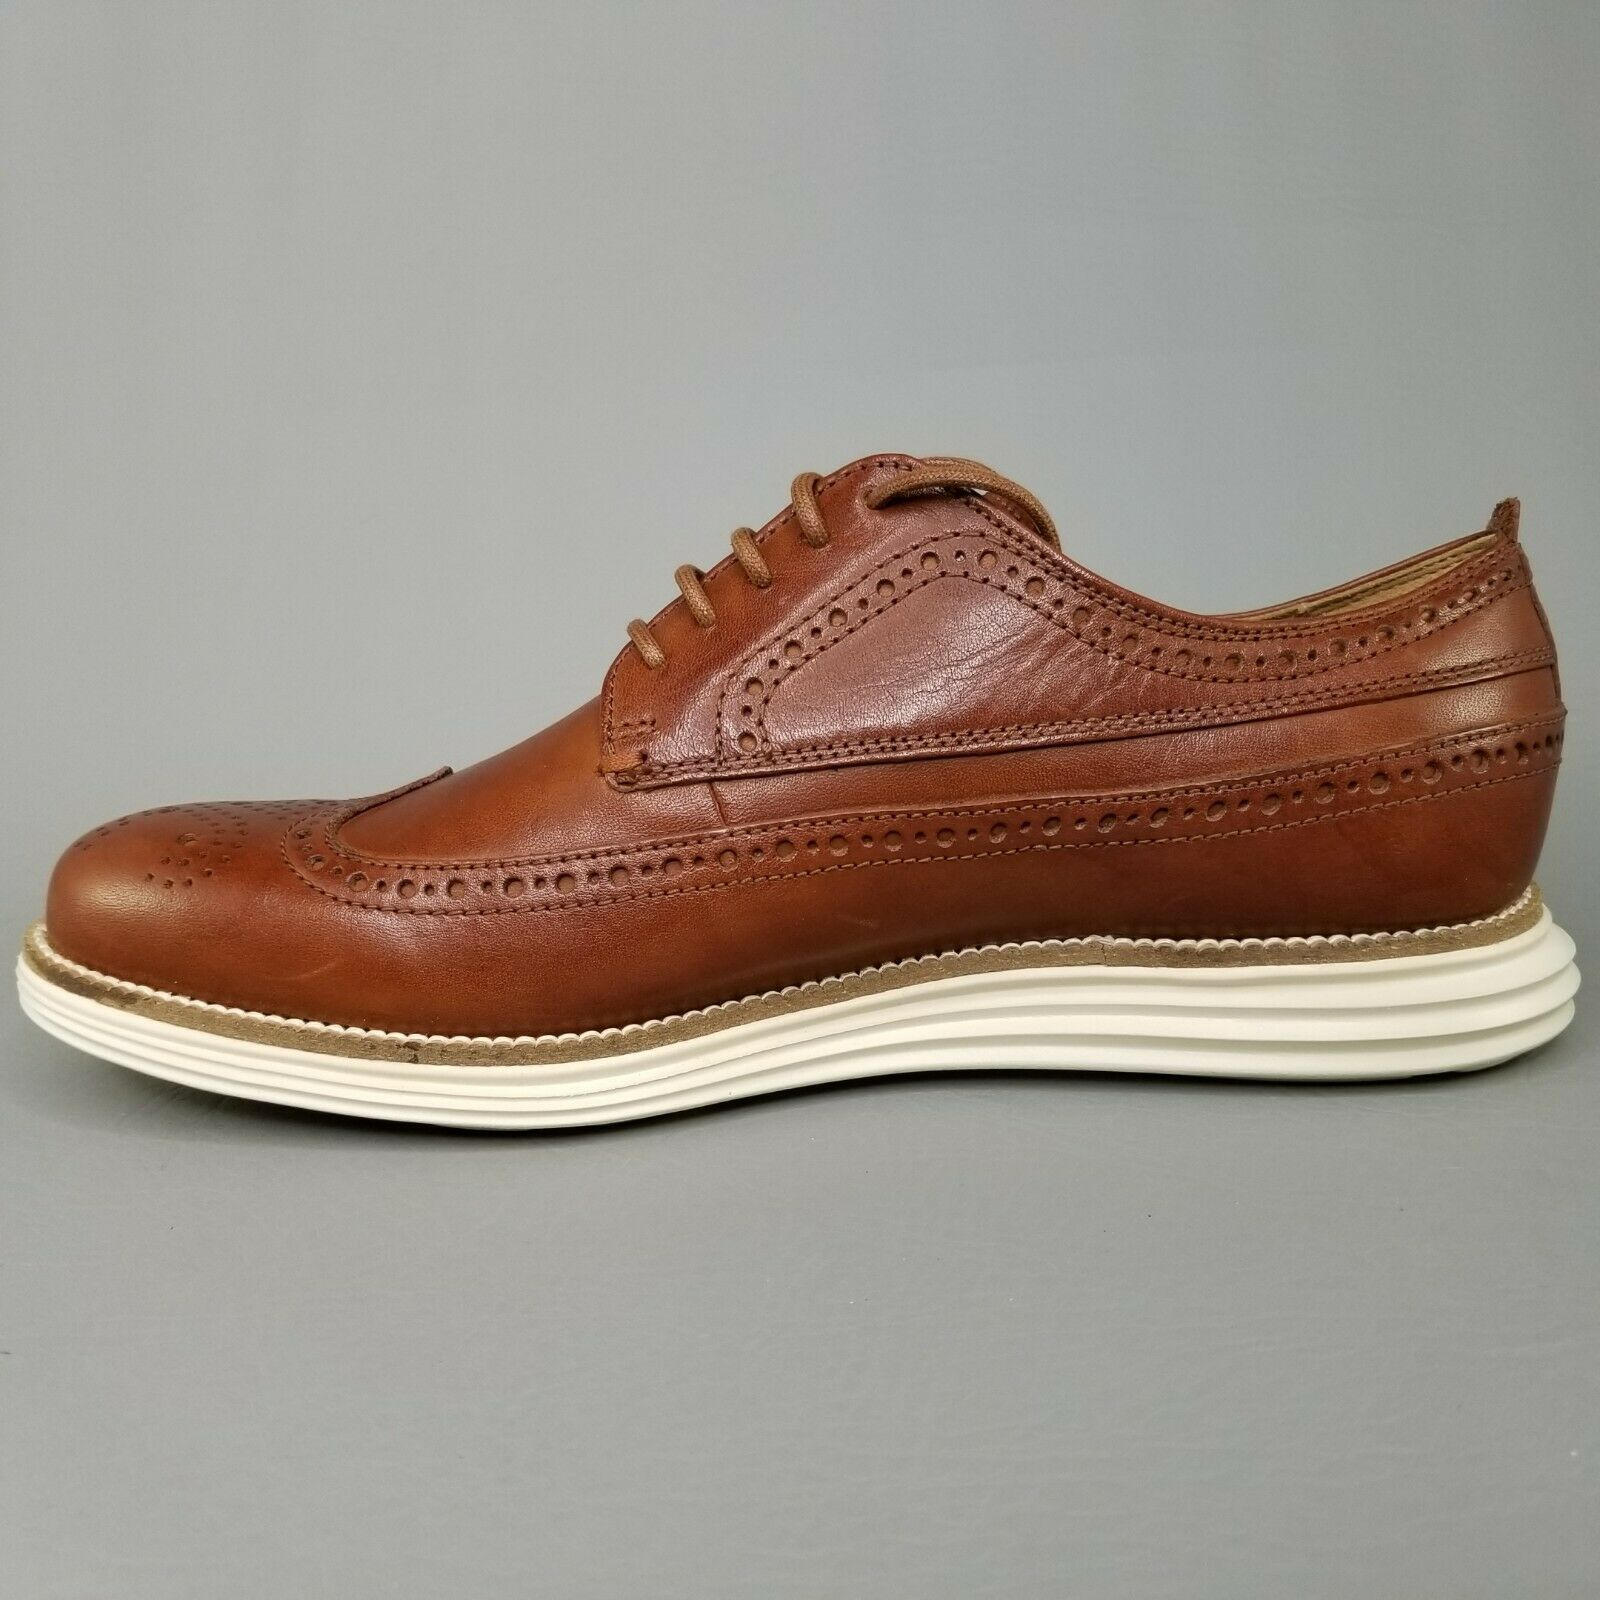 Cole Haan OriginalGrand Leather Long Wingtip Oxfords Mens SZ 8 Brogue Brown Tan